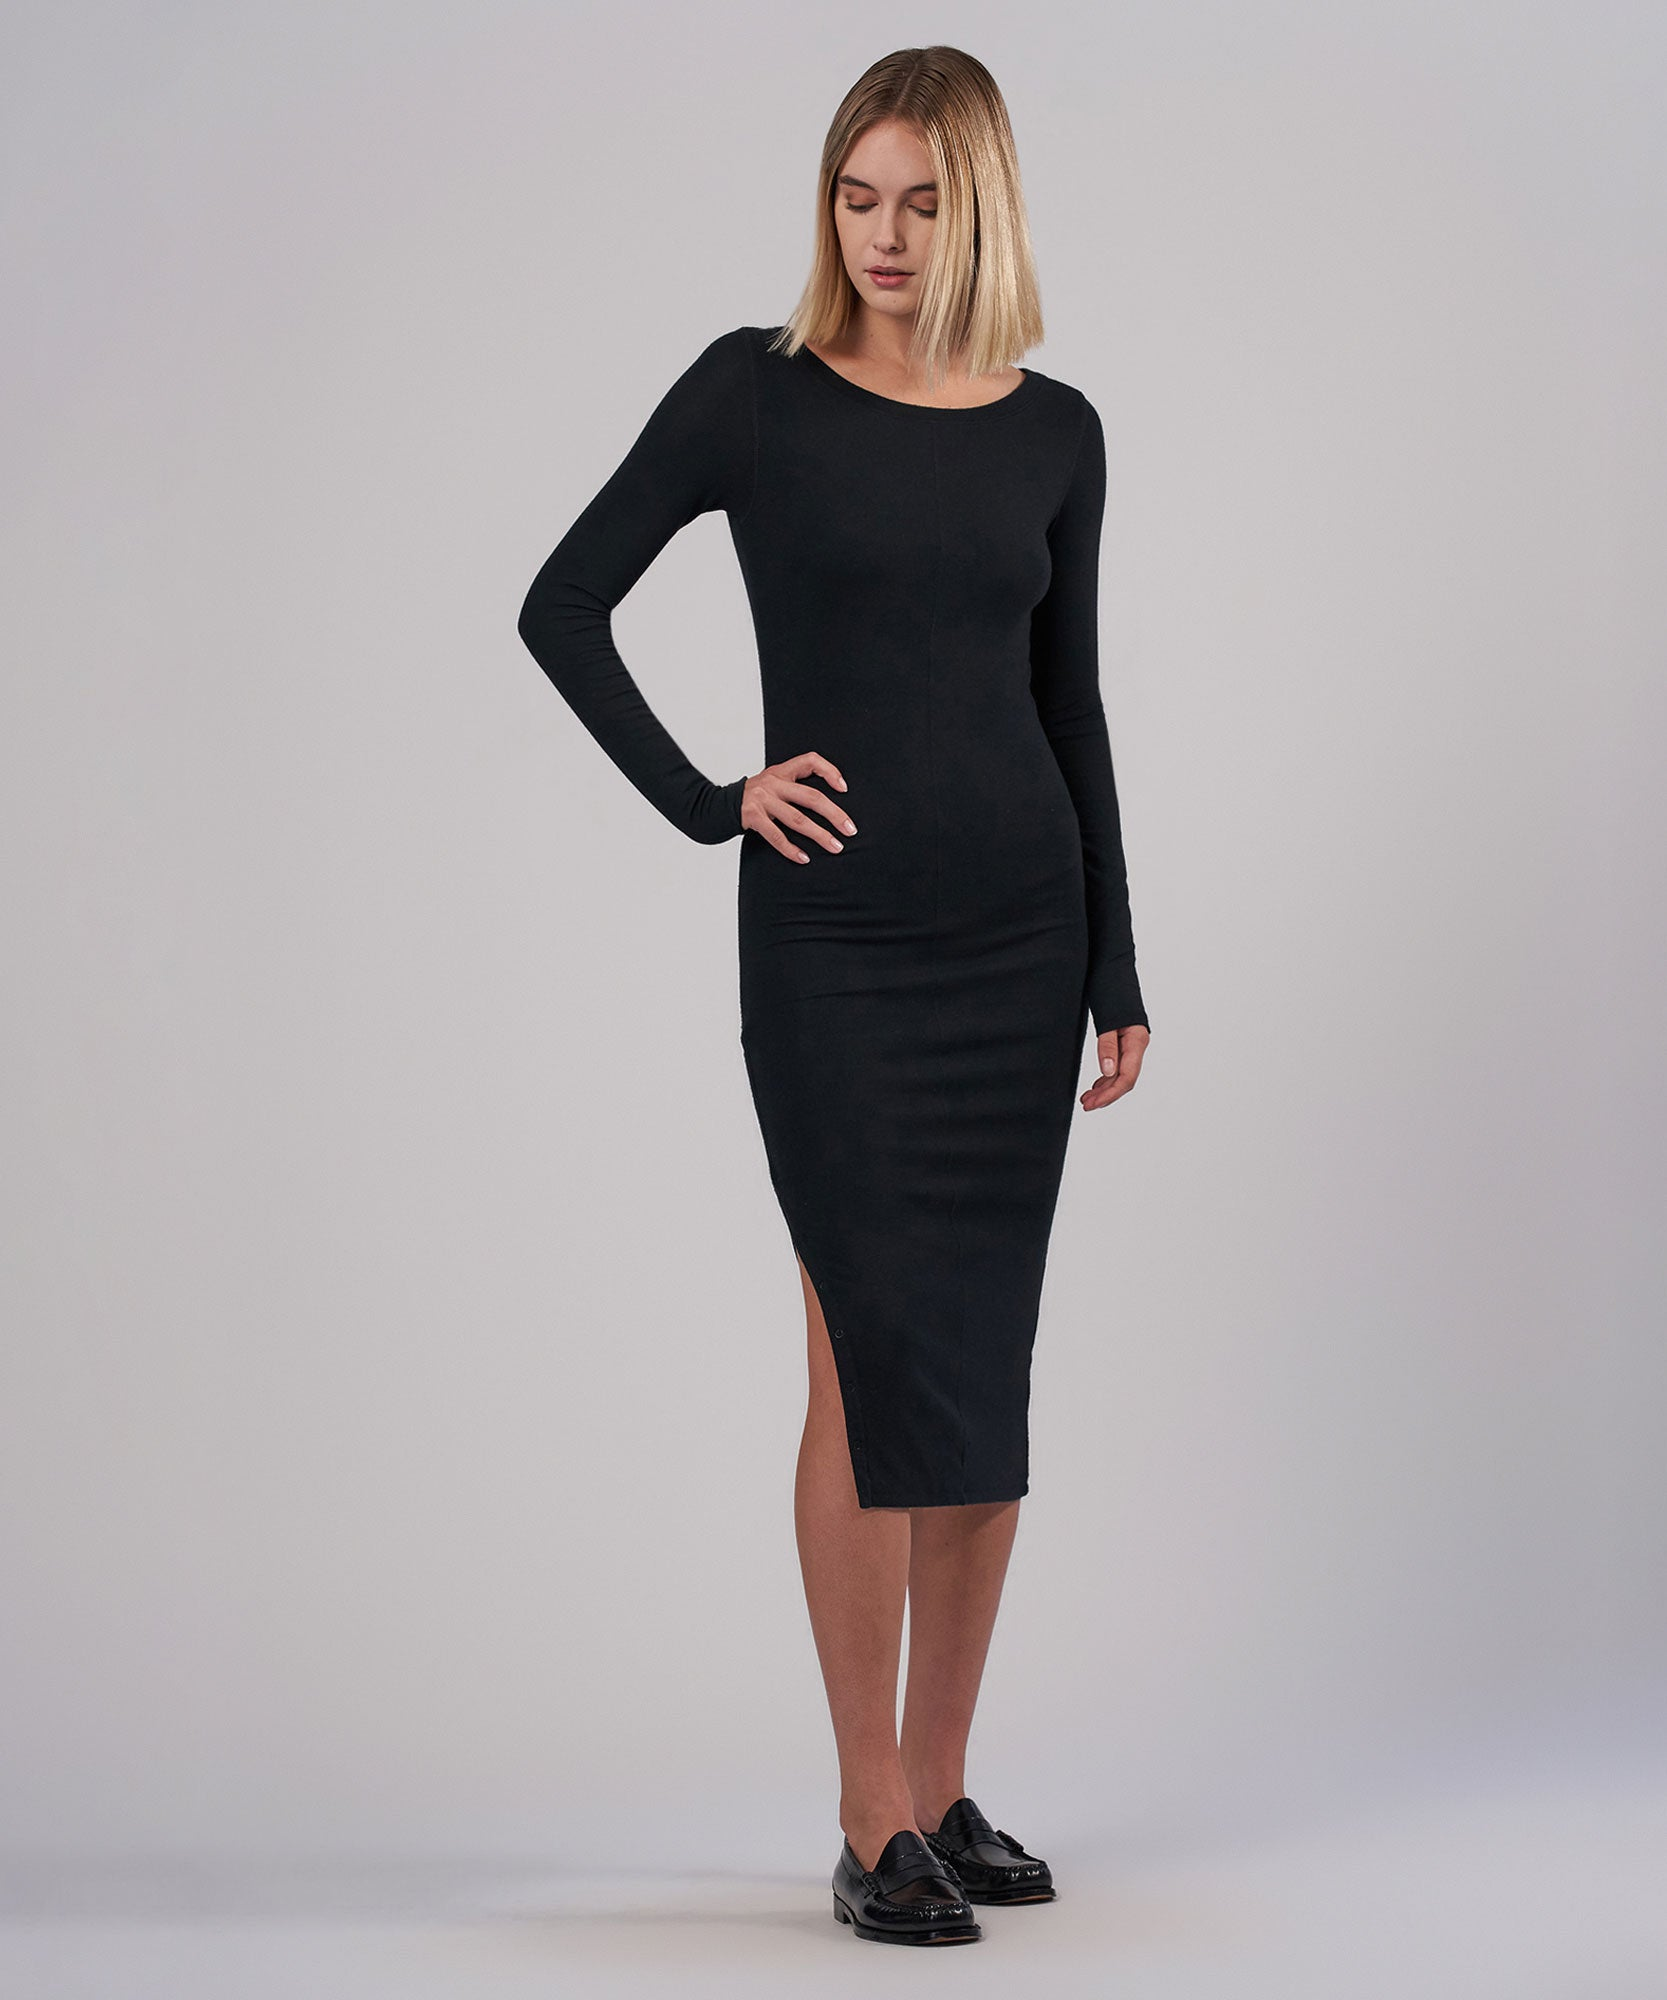 Black Modal Rib Bateaux Neck Midi Dress - Women's Dress by ATM Anthony Thomas Melillo